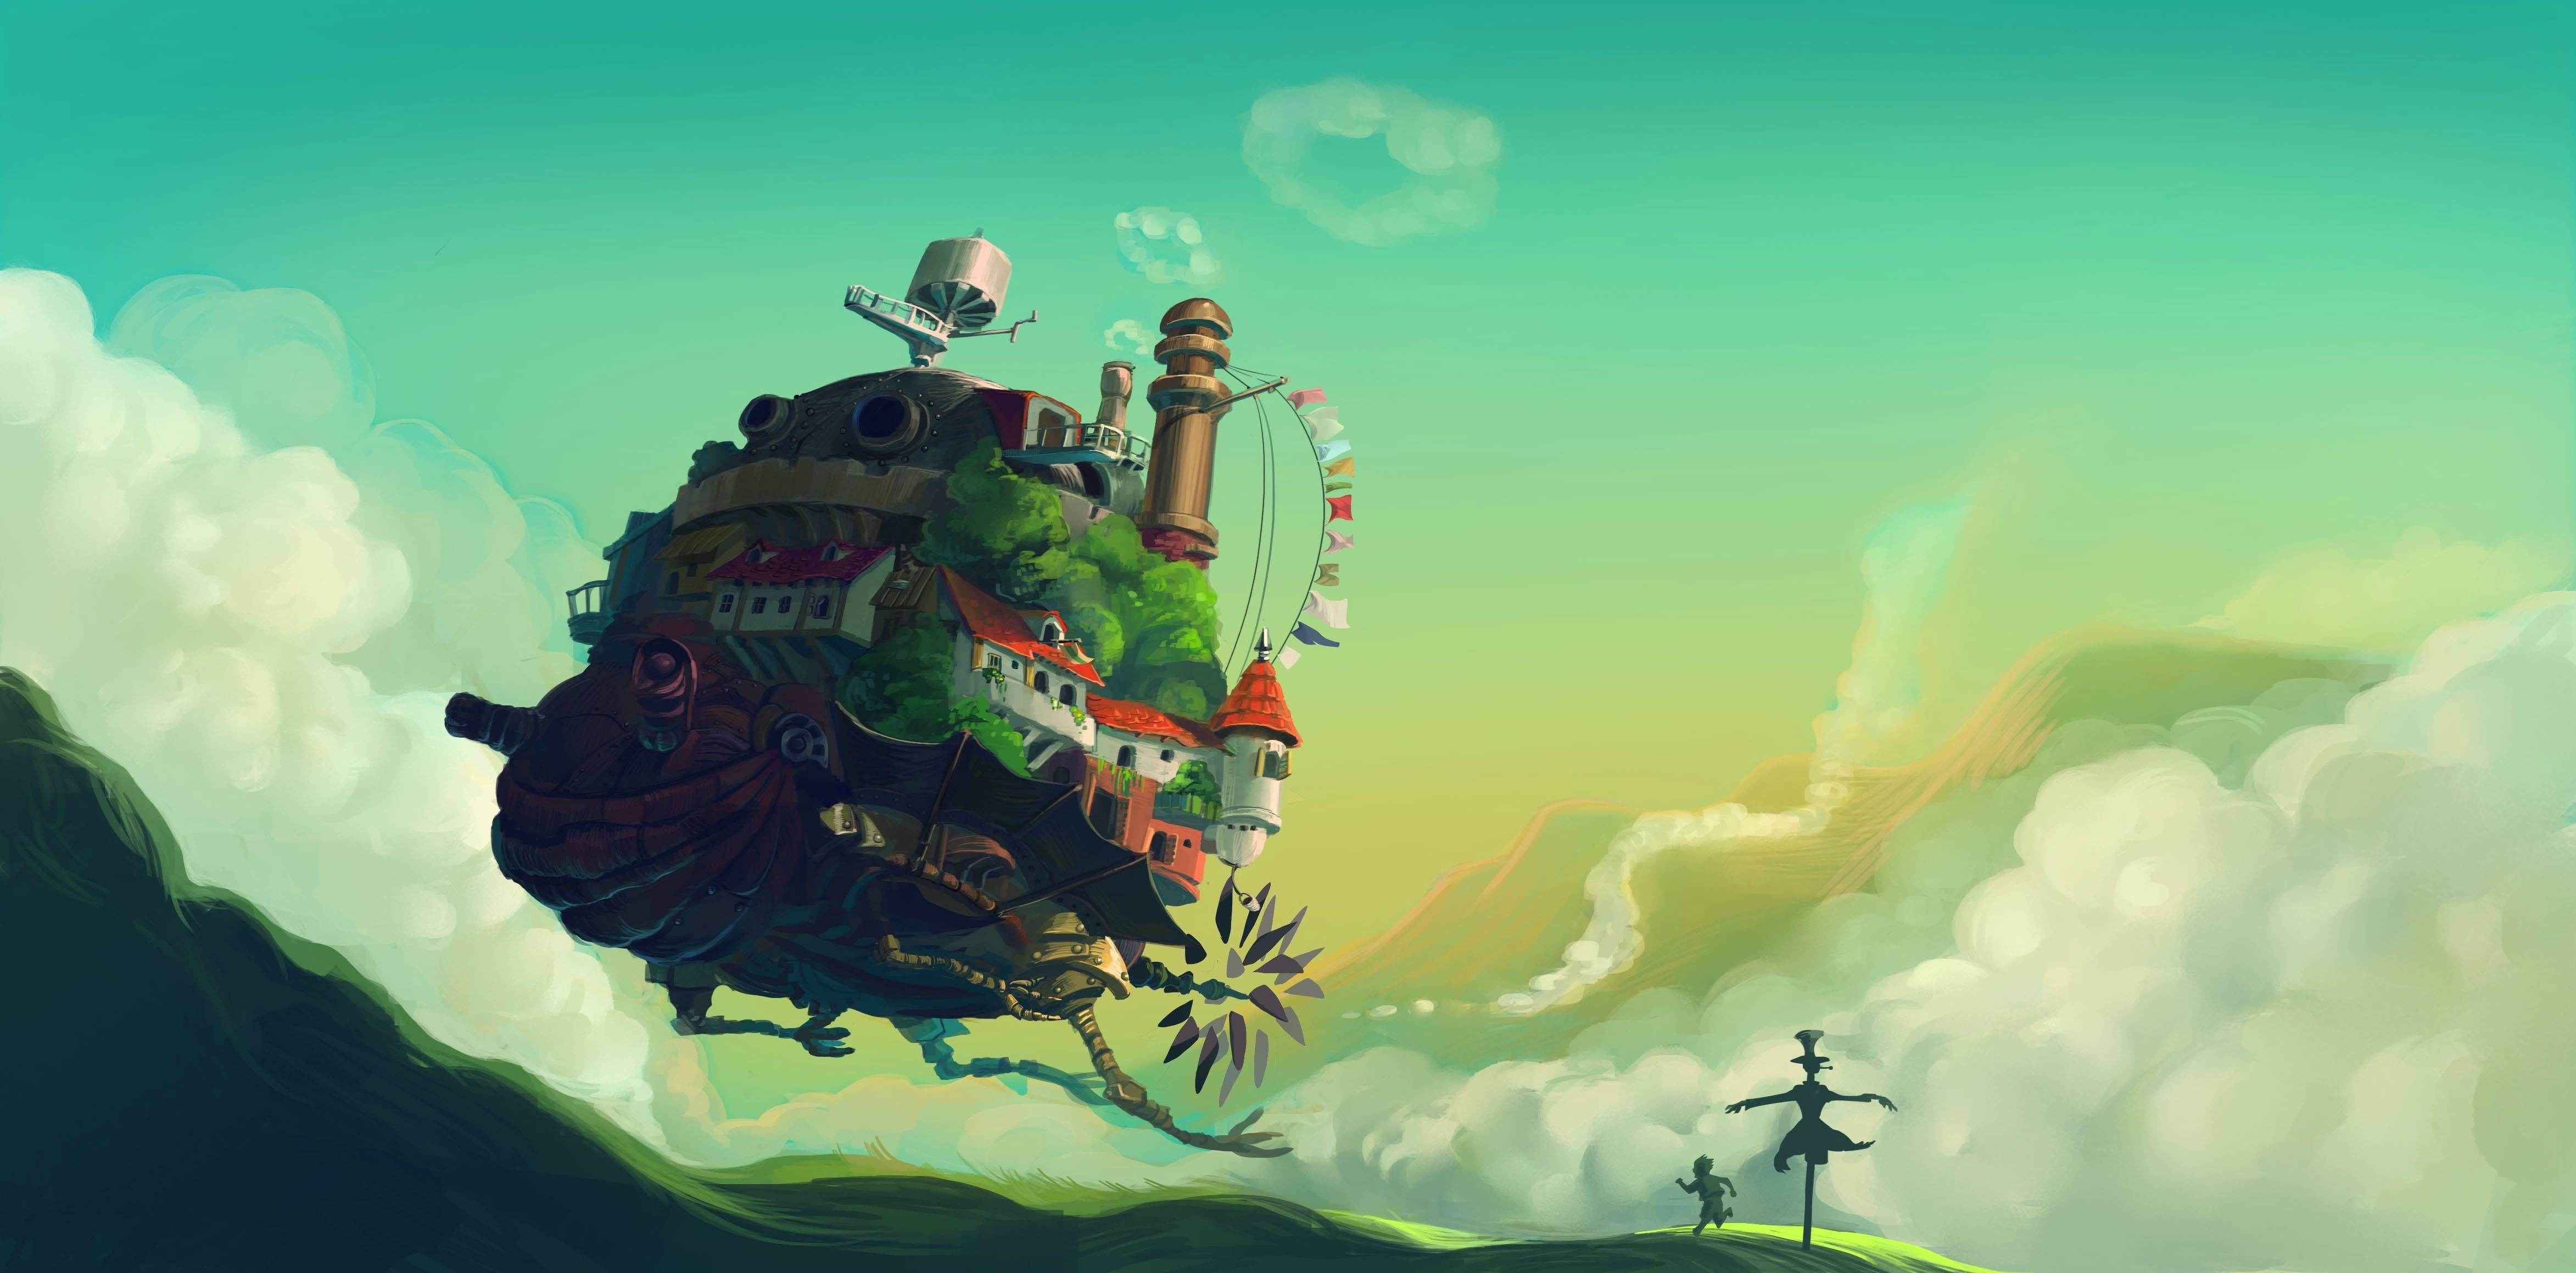 Howls moving castle 4691 x 2319 in 2020 howls moving